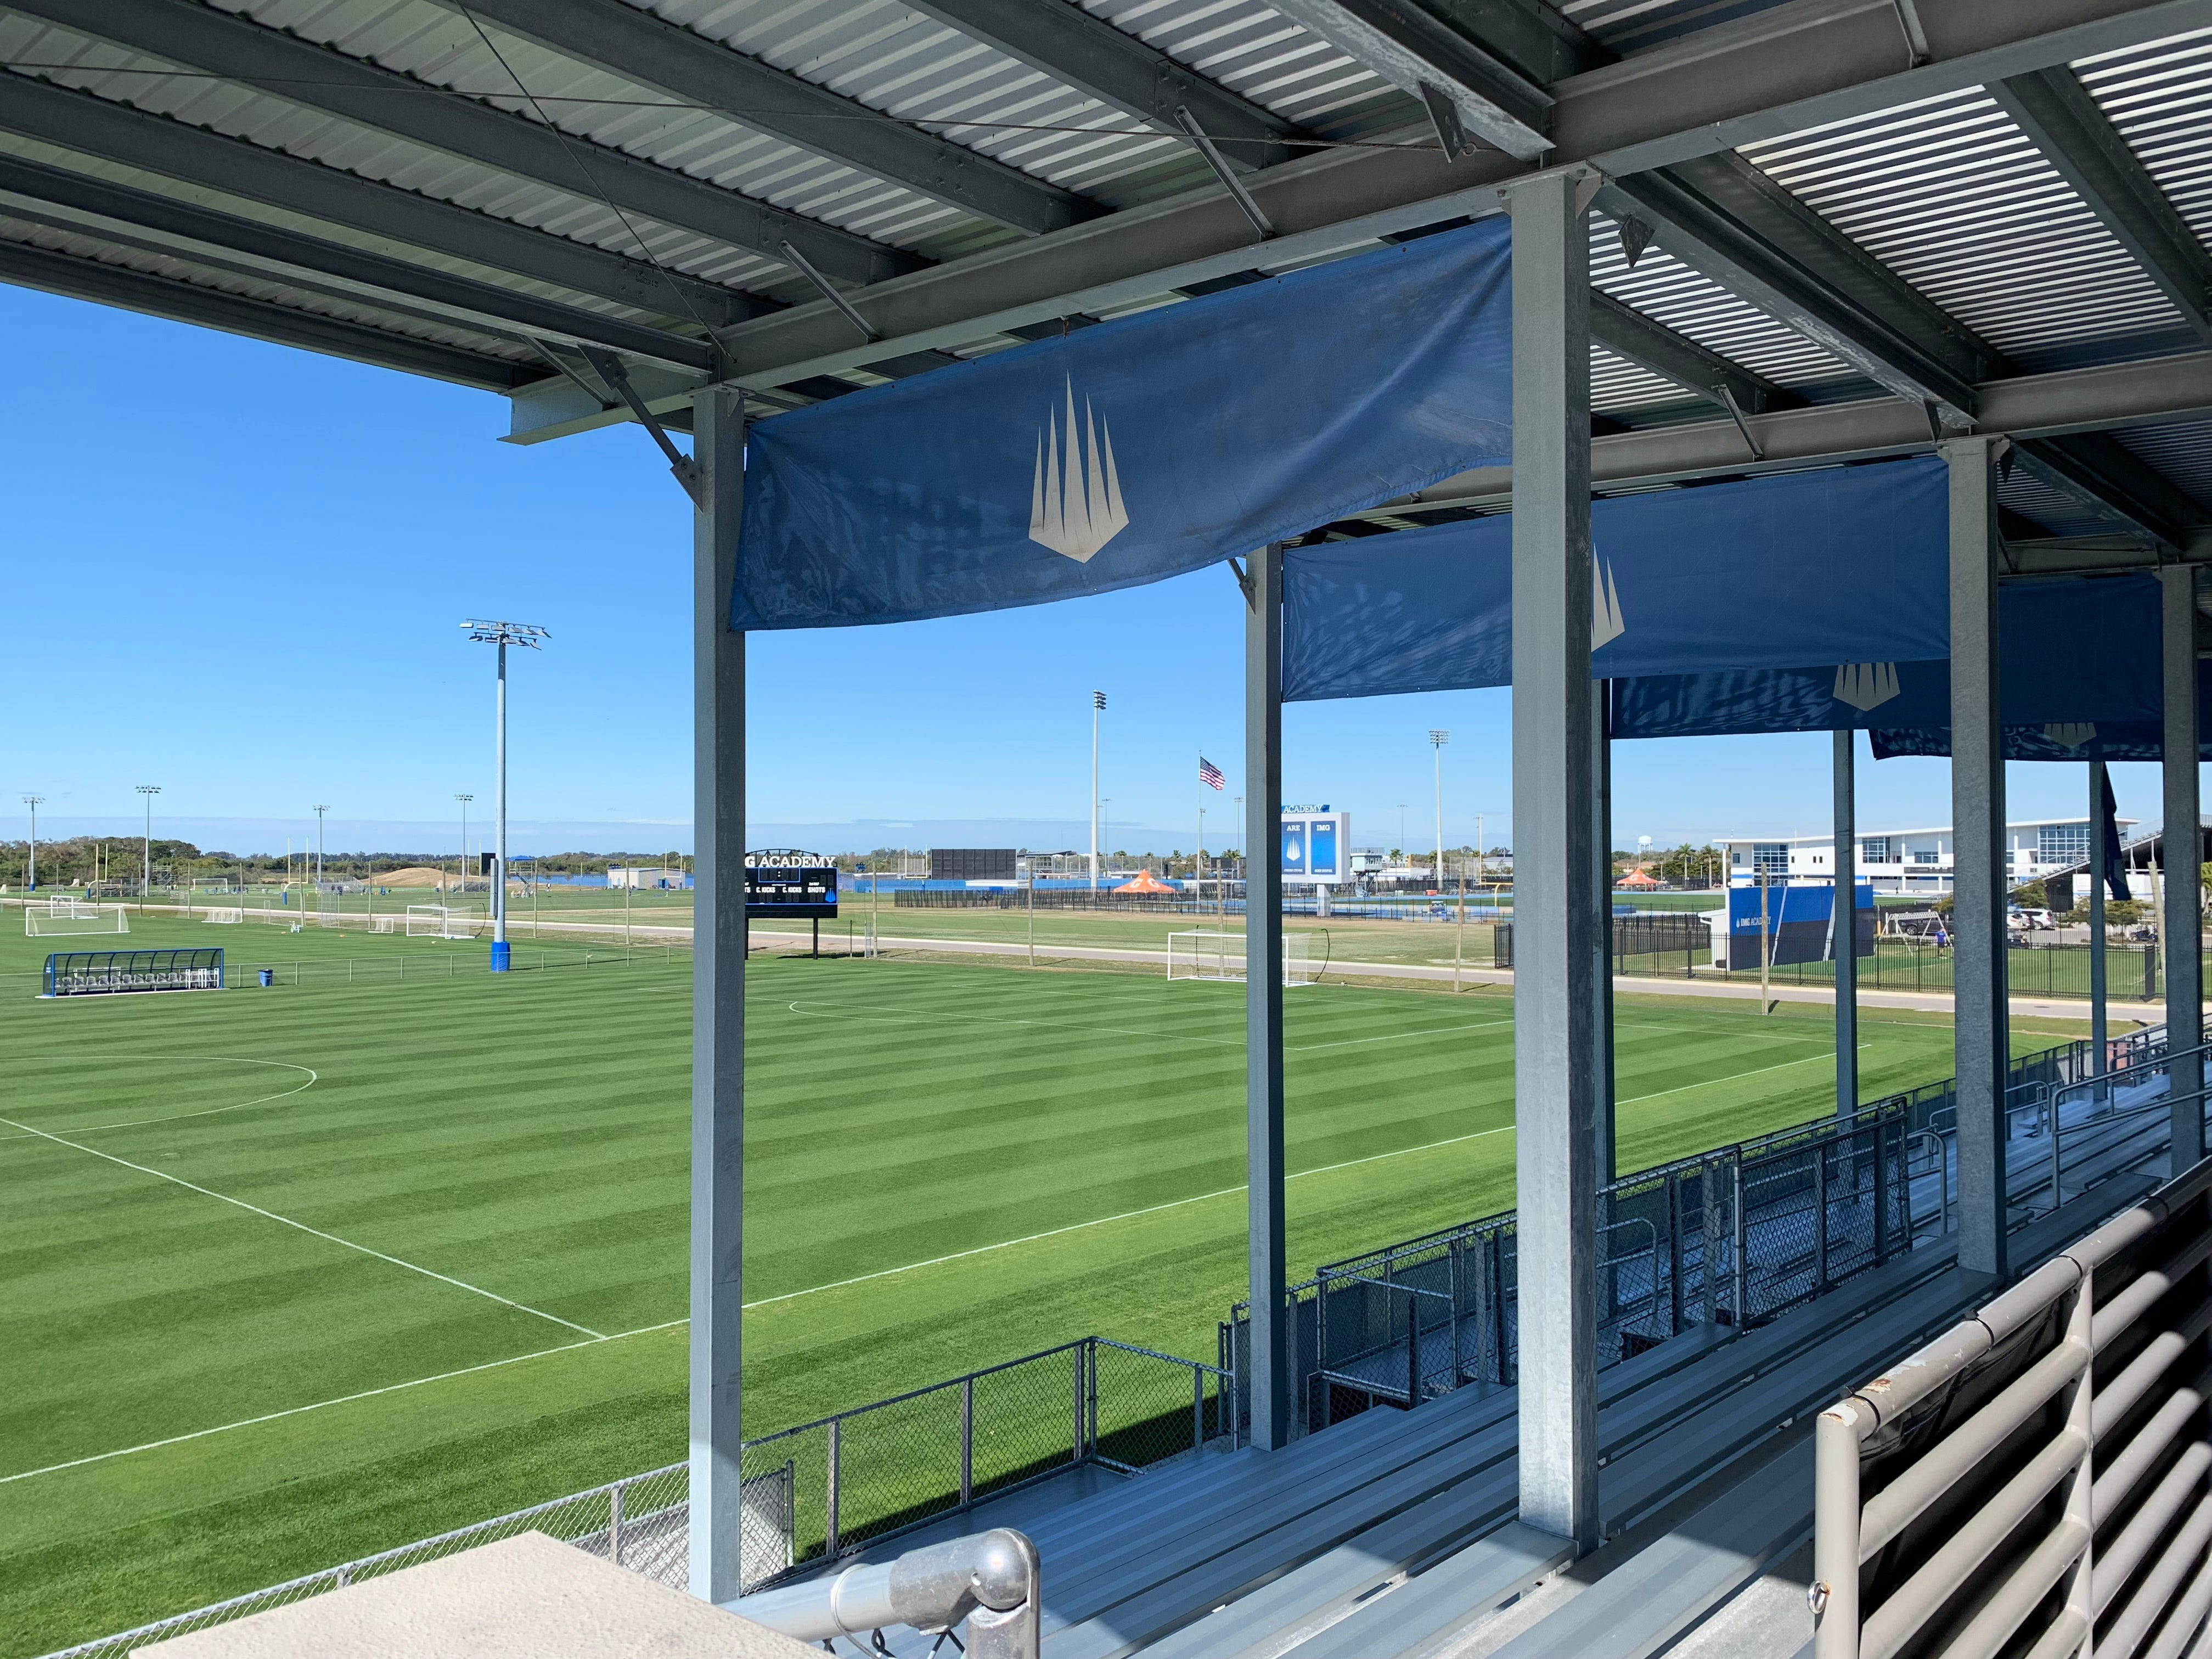 A view of the match-play field from the IMG Academy Soccer Complex's covered grandstand for spectators.